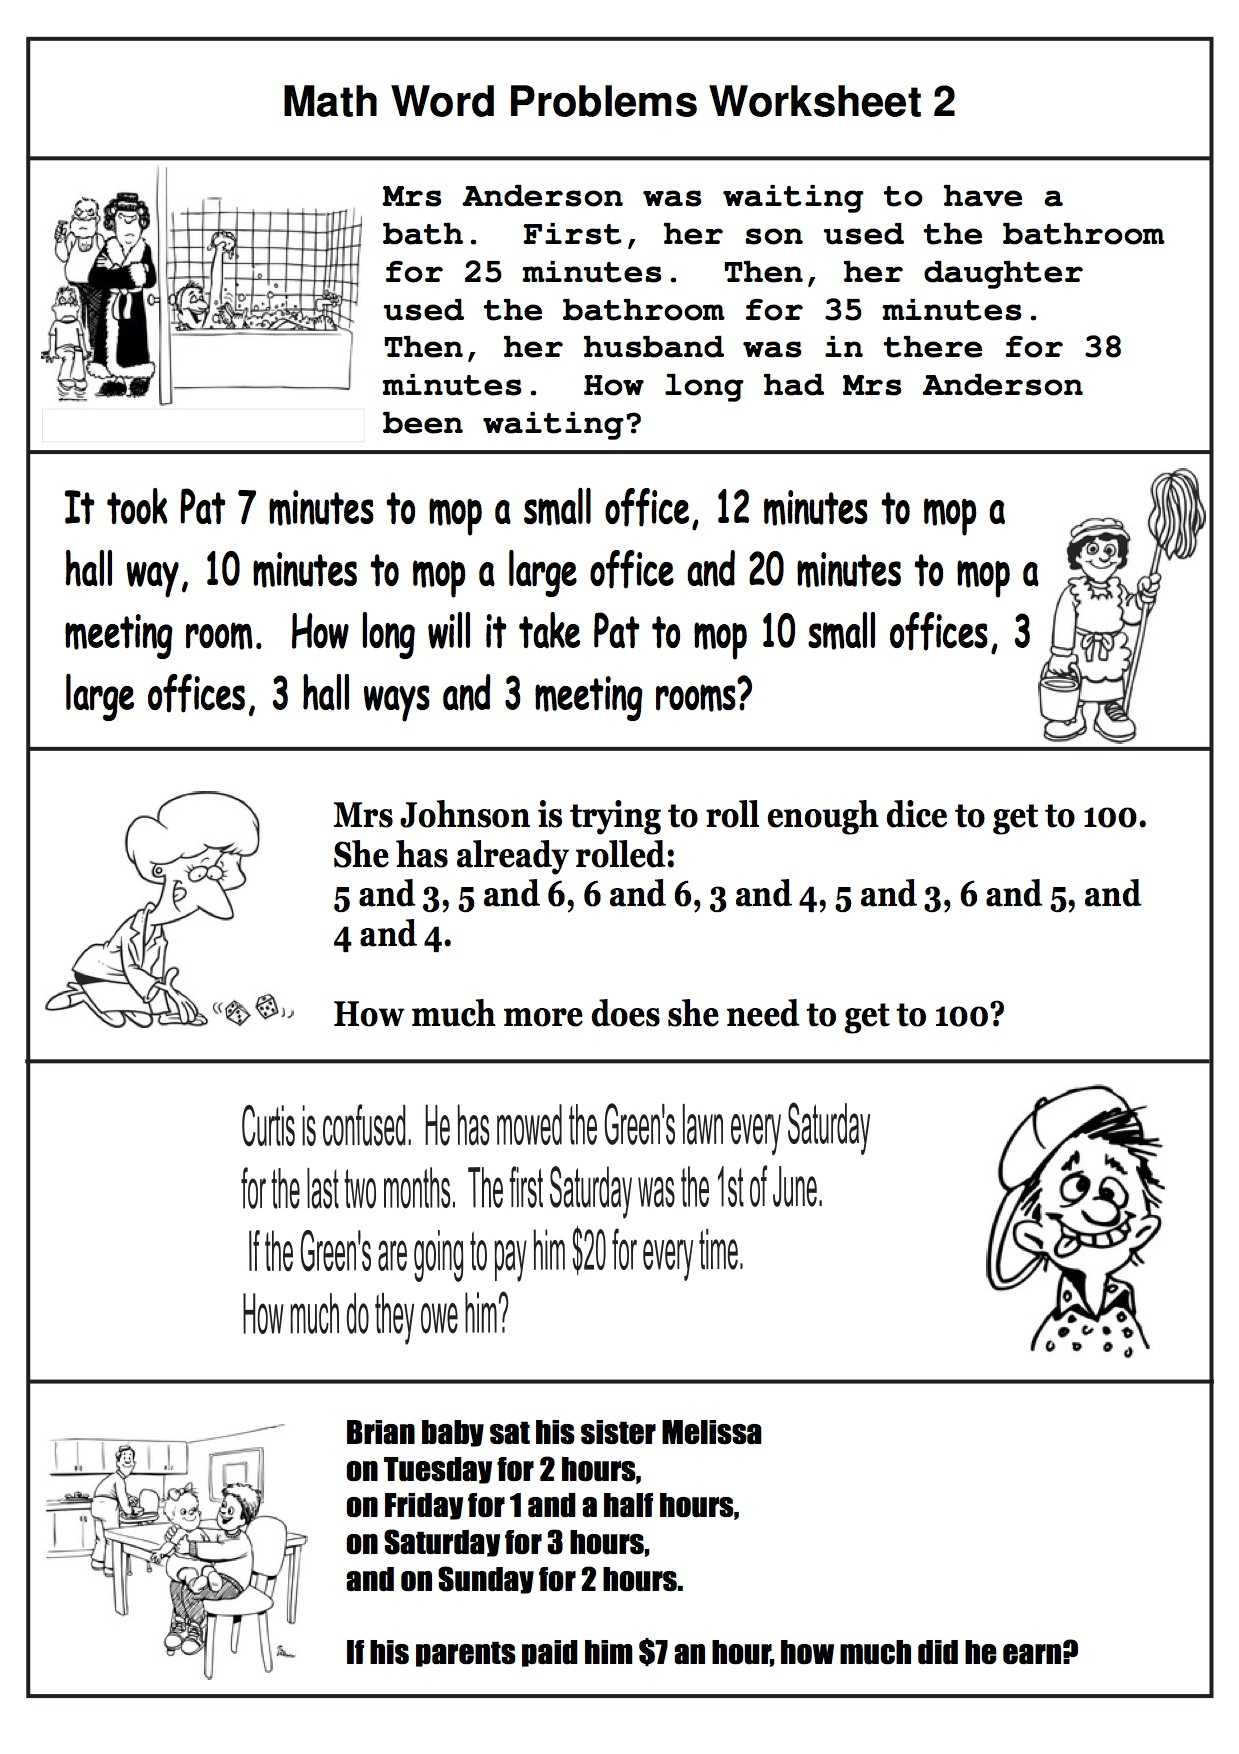 Fresh Math Word Problems For Kindergarten And First Grade   Fun - Free Printable 1St Grade Math Word Problems